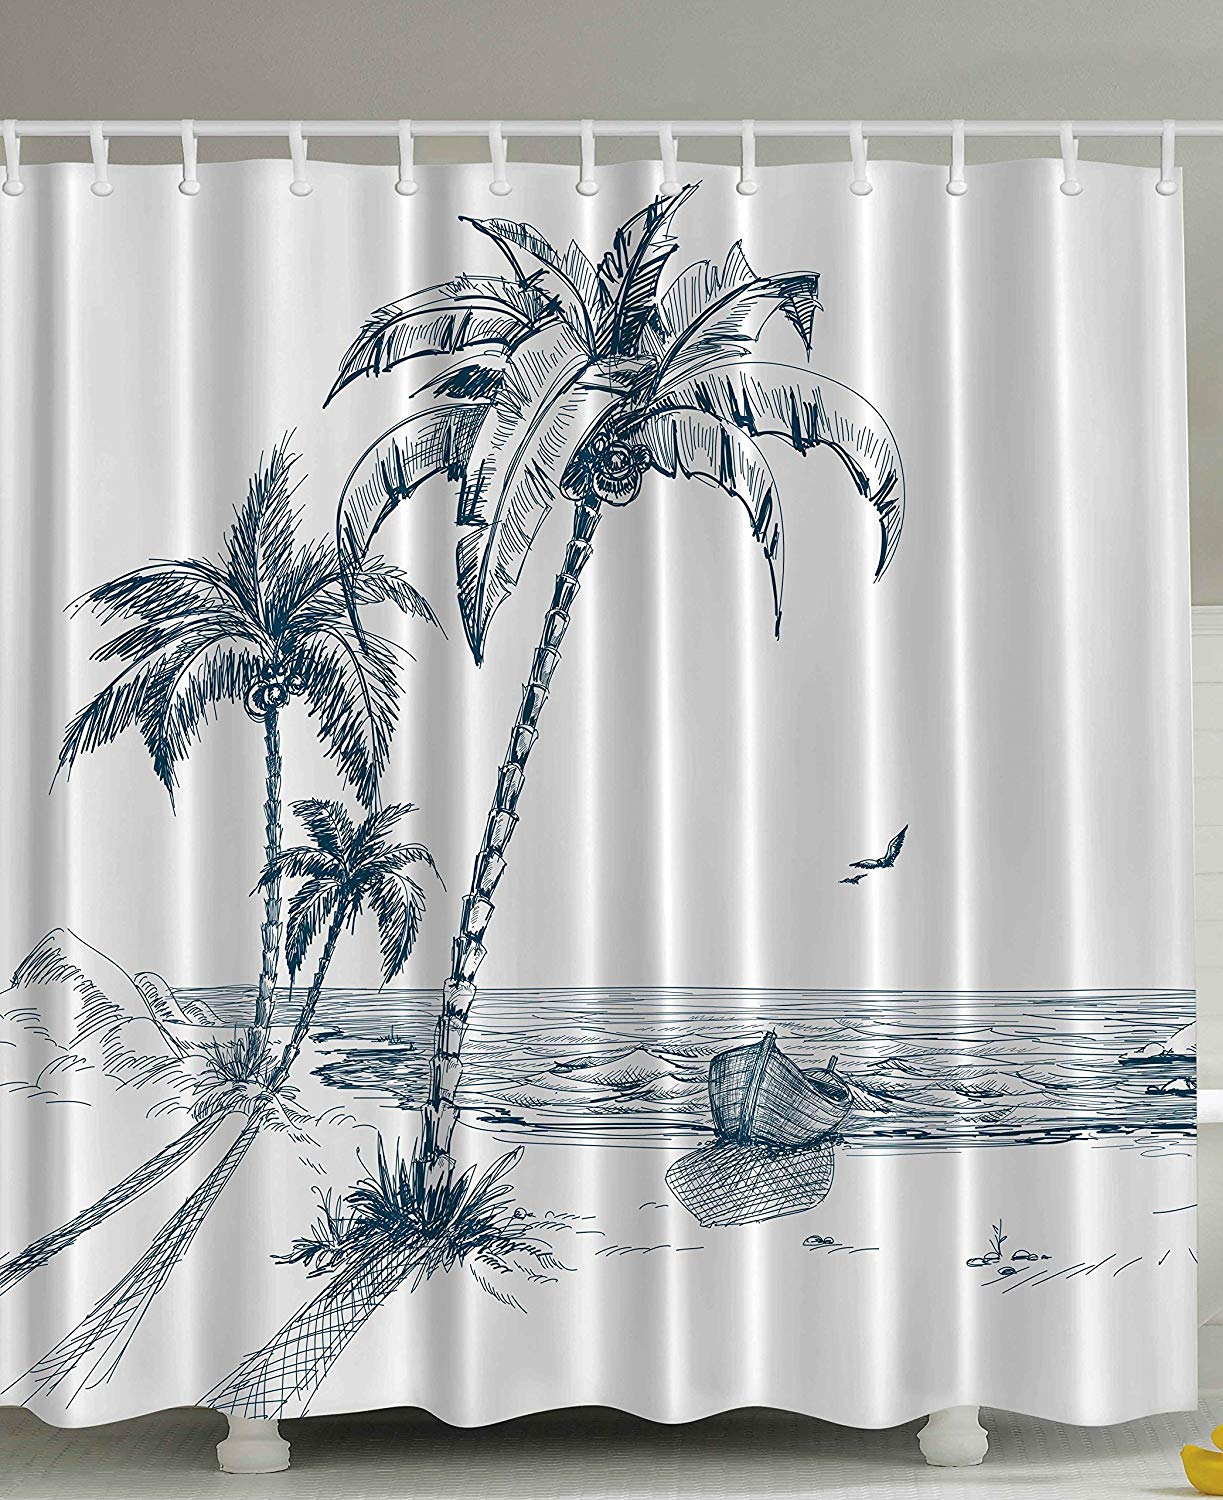 Island Shower Curtain Sketch Art Of A Tropical Seaside With Palm Trees Fishing Boat Flying Birds Fabric Bathroom Decor Set